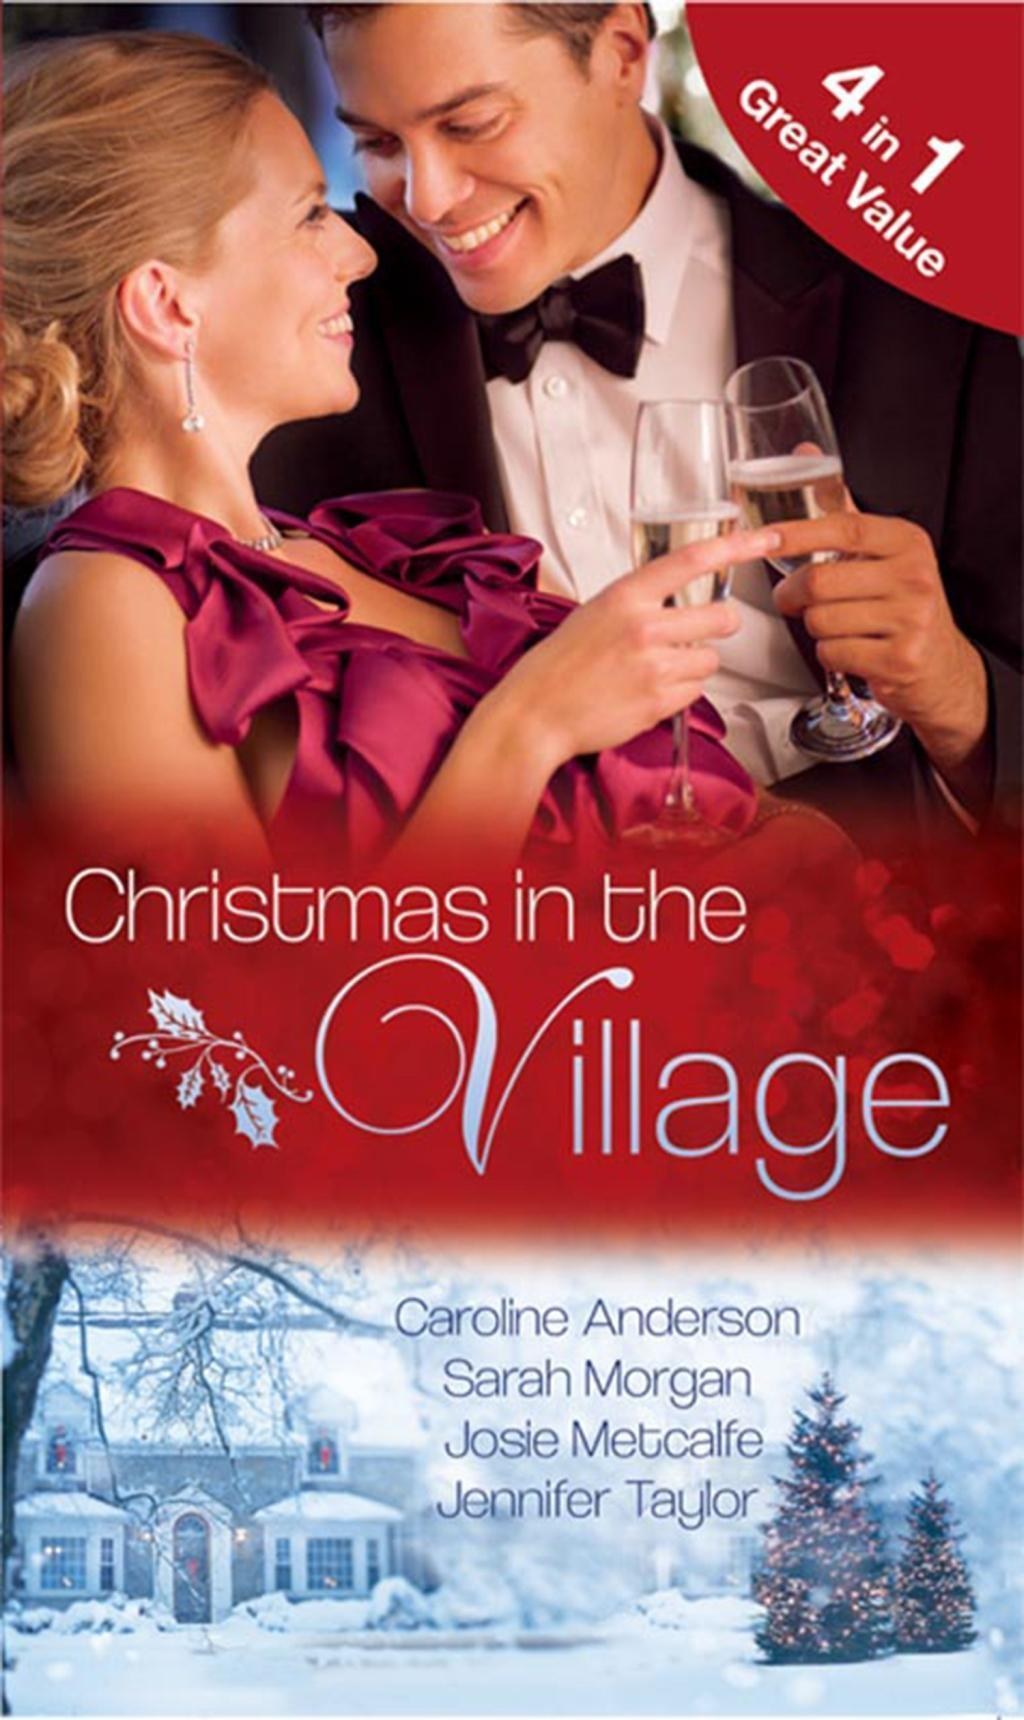 Christmas in the Village: Christmas Eve Baby / The Italian's New-Year Marriage Wish / The Doctor's Bride By Sunrise / The Surgeon's Fatherhood Surprise (Mills & Boon M&B) (Brides of Penhally Bay, Book 1)